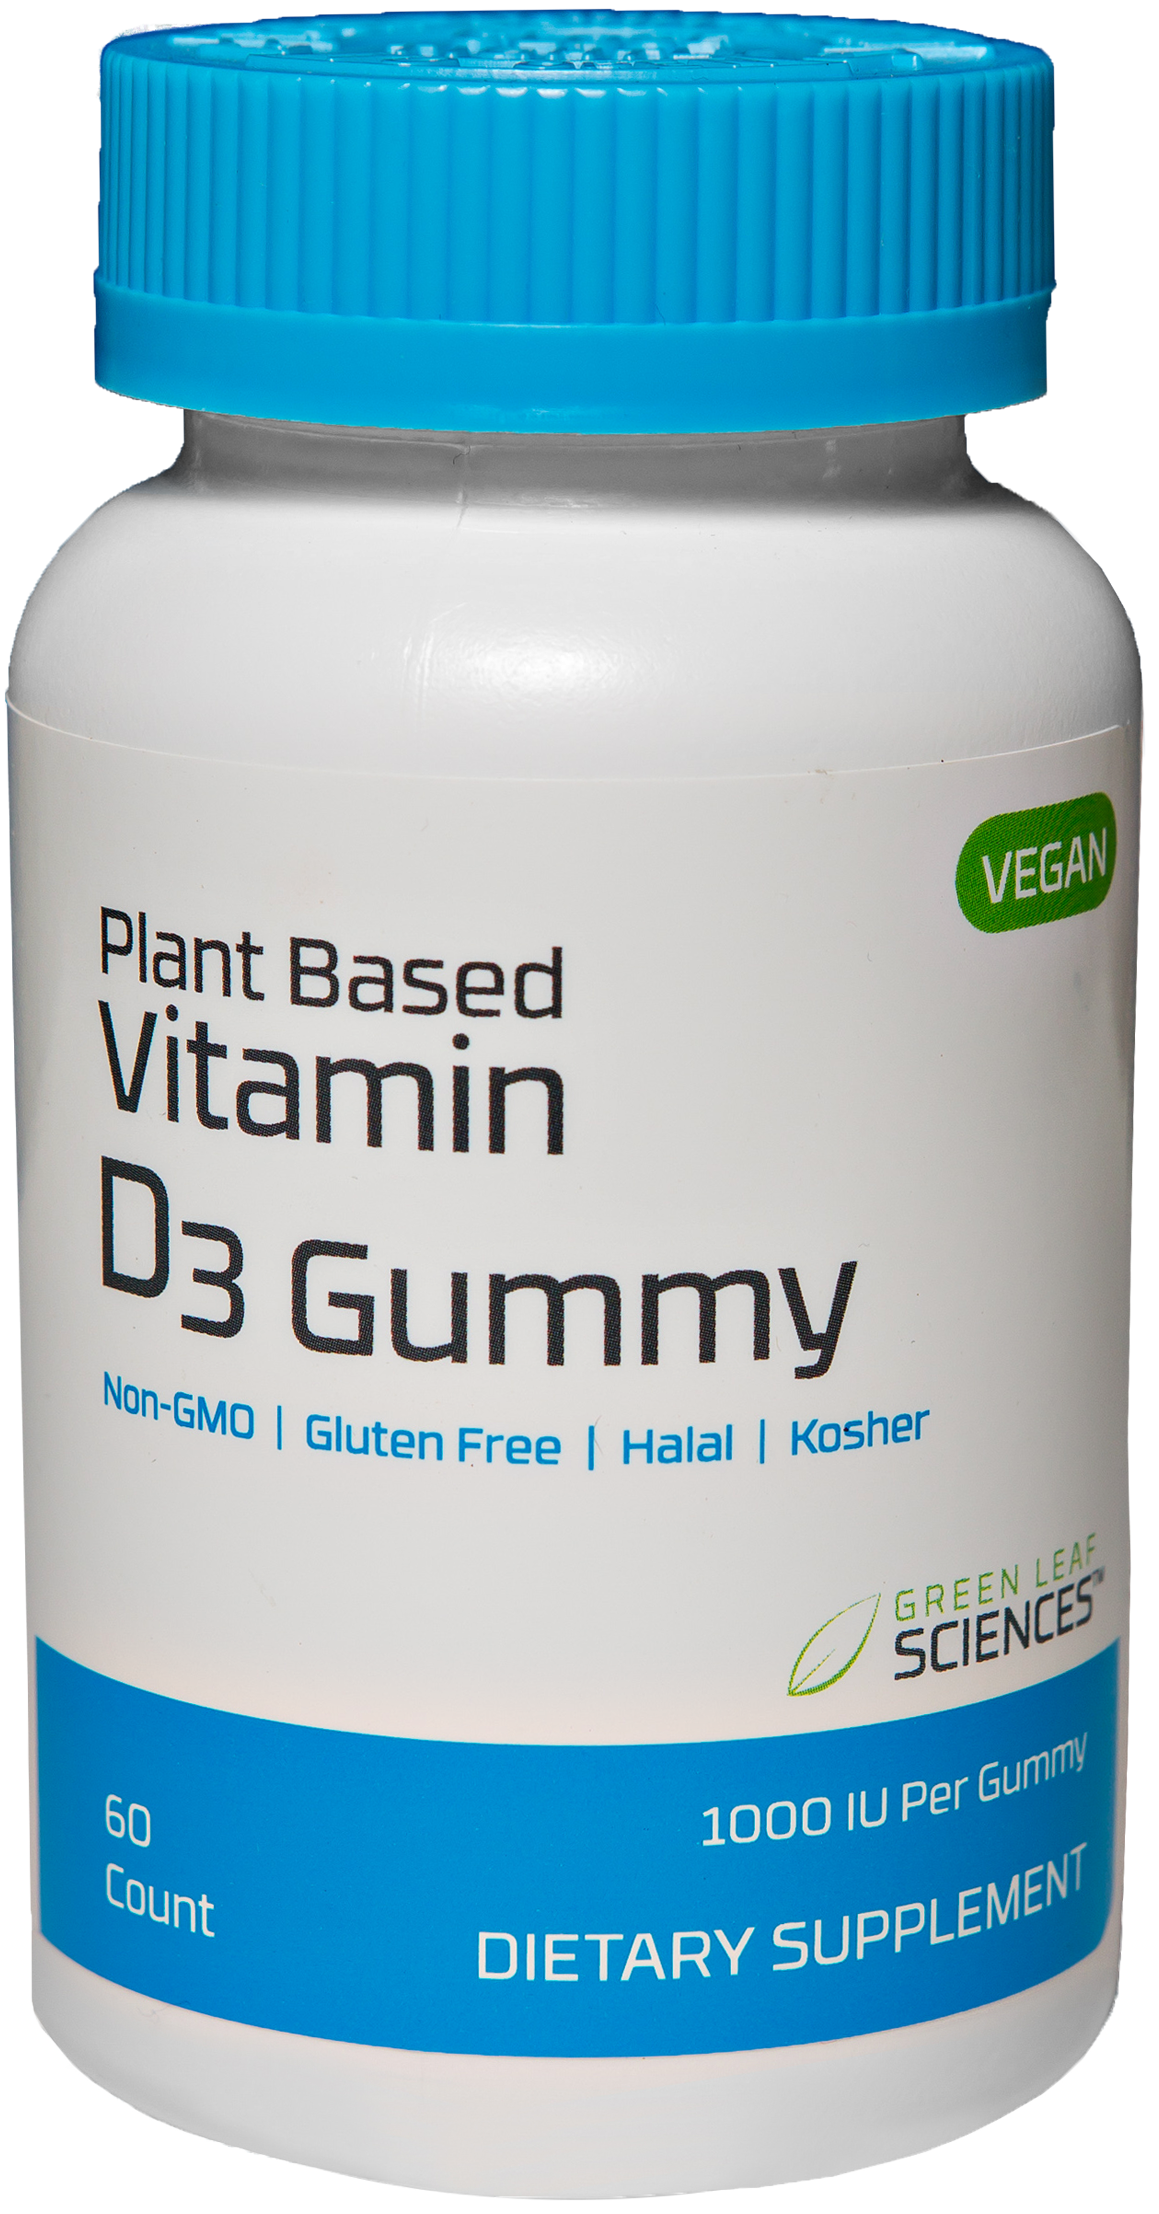 Vitamin D3 Gummy bottle